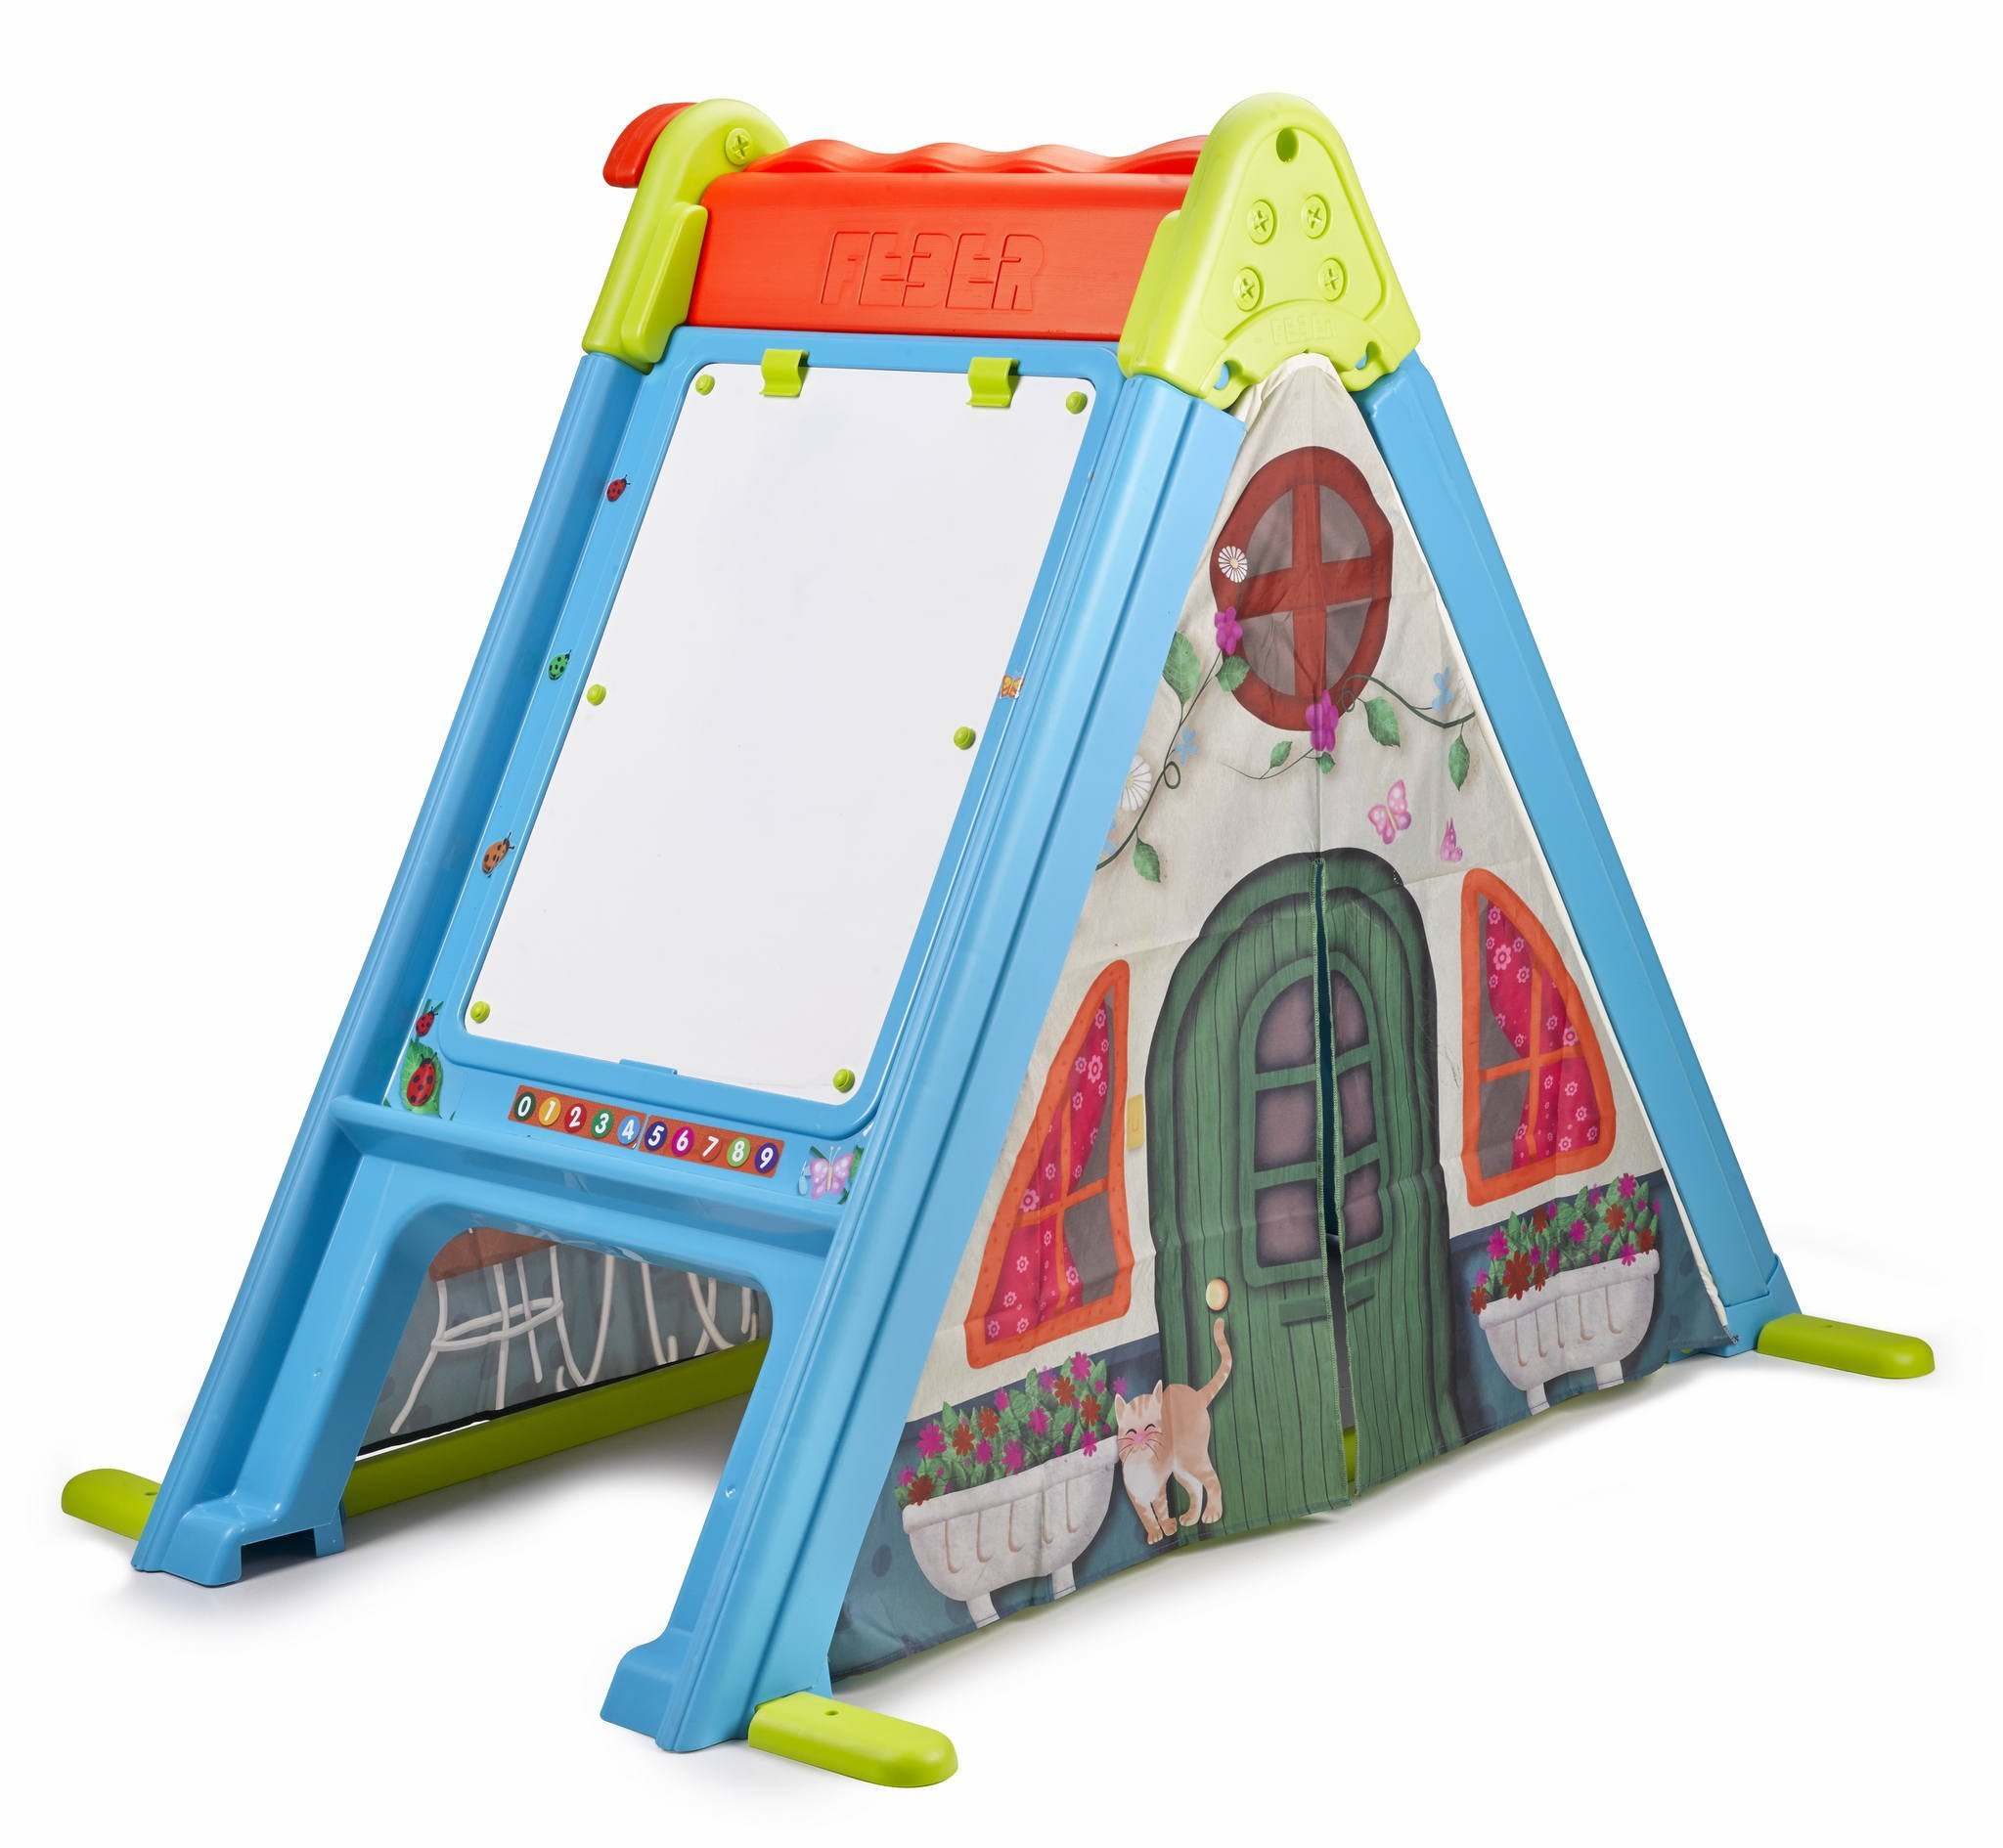 Feber 800011400 Play and Fold Activity House 3 in 1 - Playset - Easy to Store - Indoor and Outdoor, Multicolor by Feber